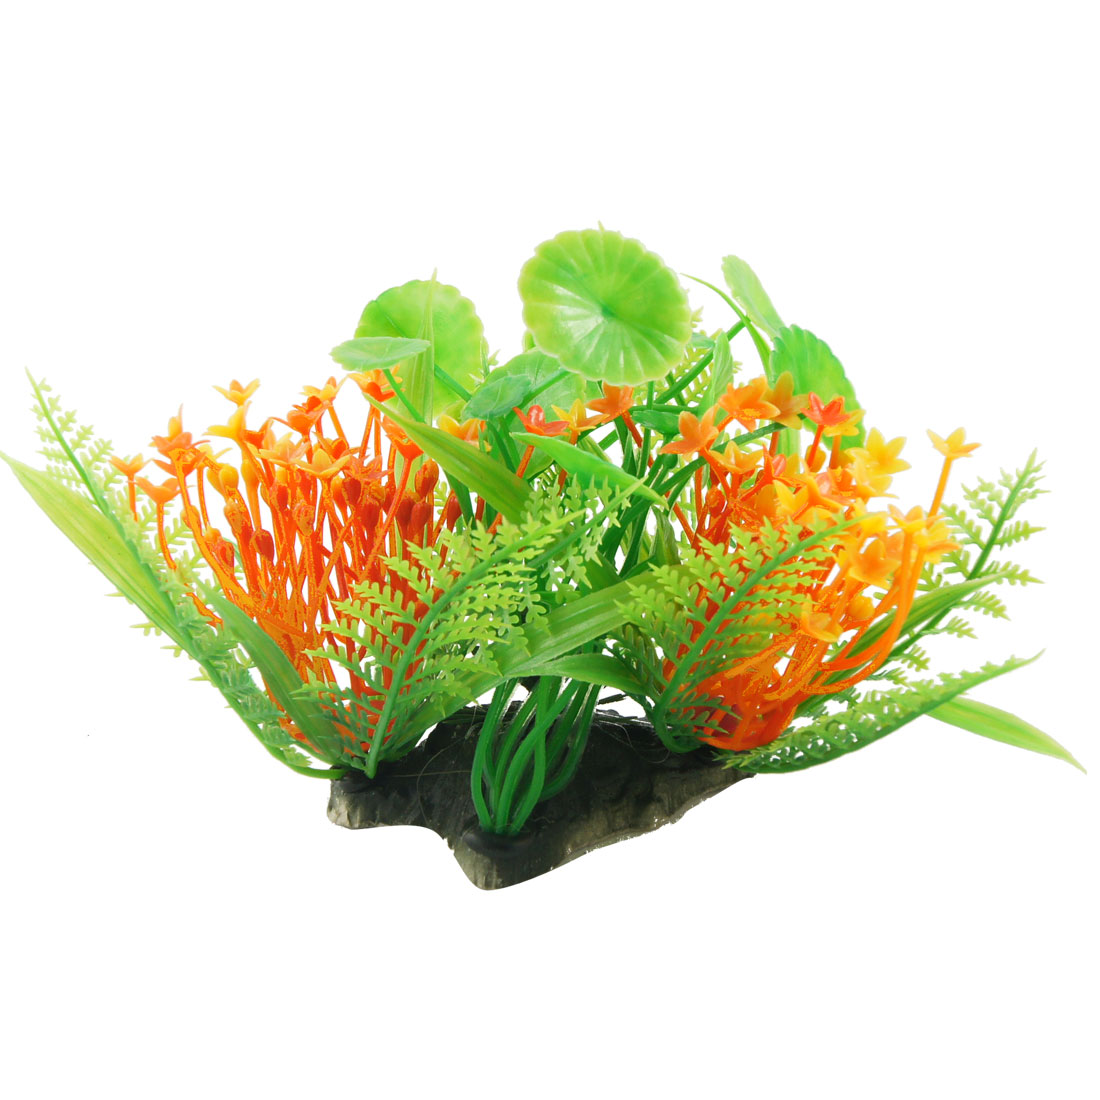 Multi Color Artificial Floral Underwater Plants for Fish Tank Aquarium